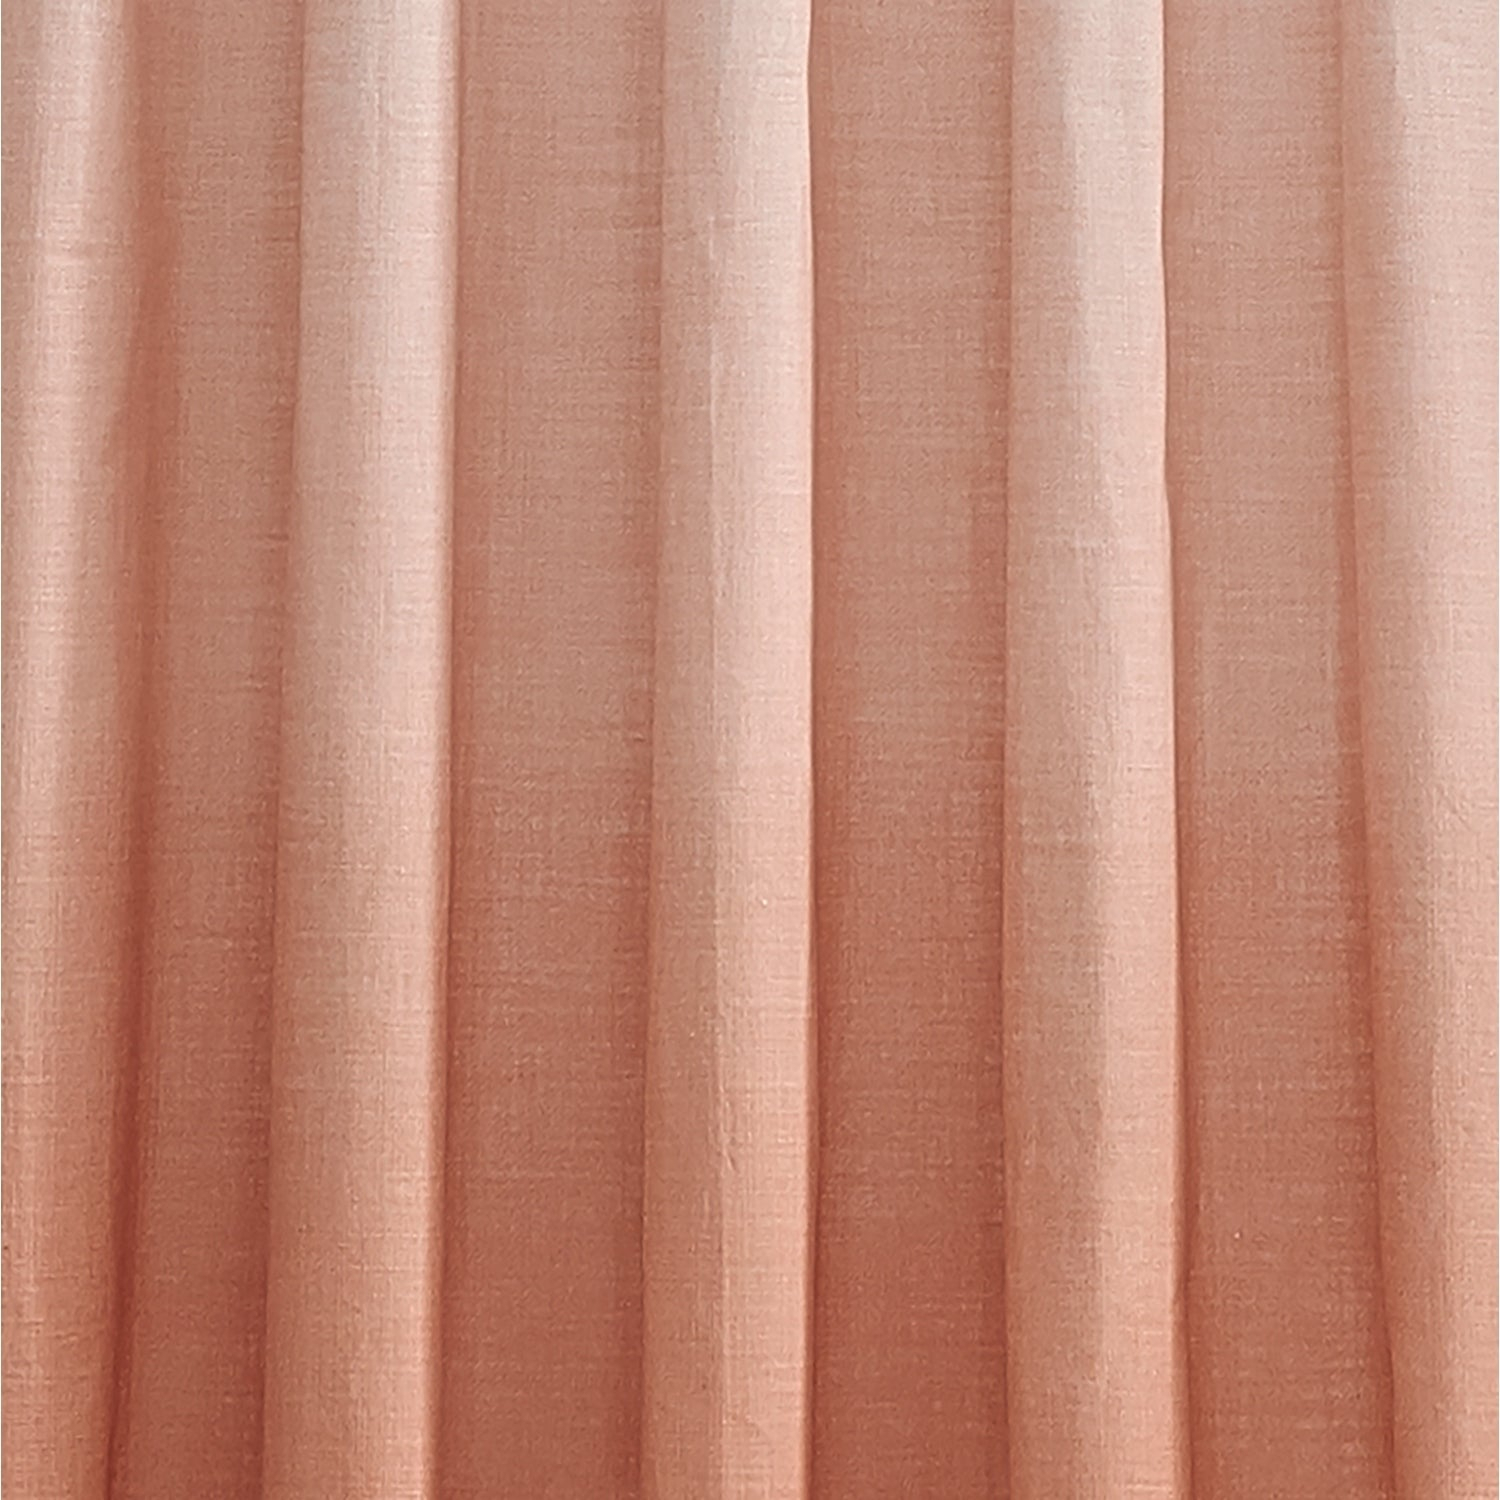 Vue Signature Arashi Ombre Embroidery Curtain Panel With Regard To Ombre Embroidery Curtain Panels (View 12 of 20)